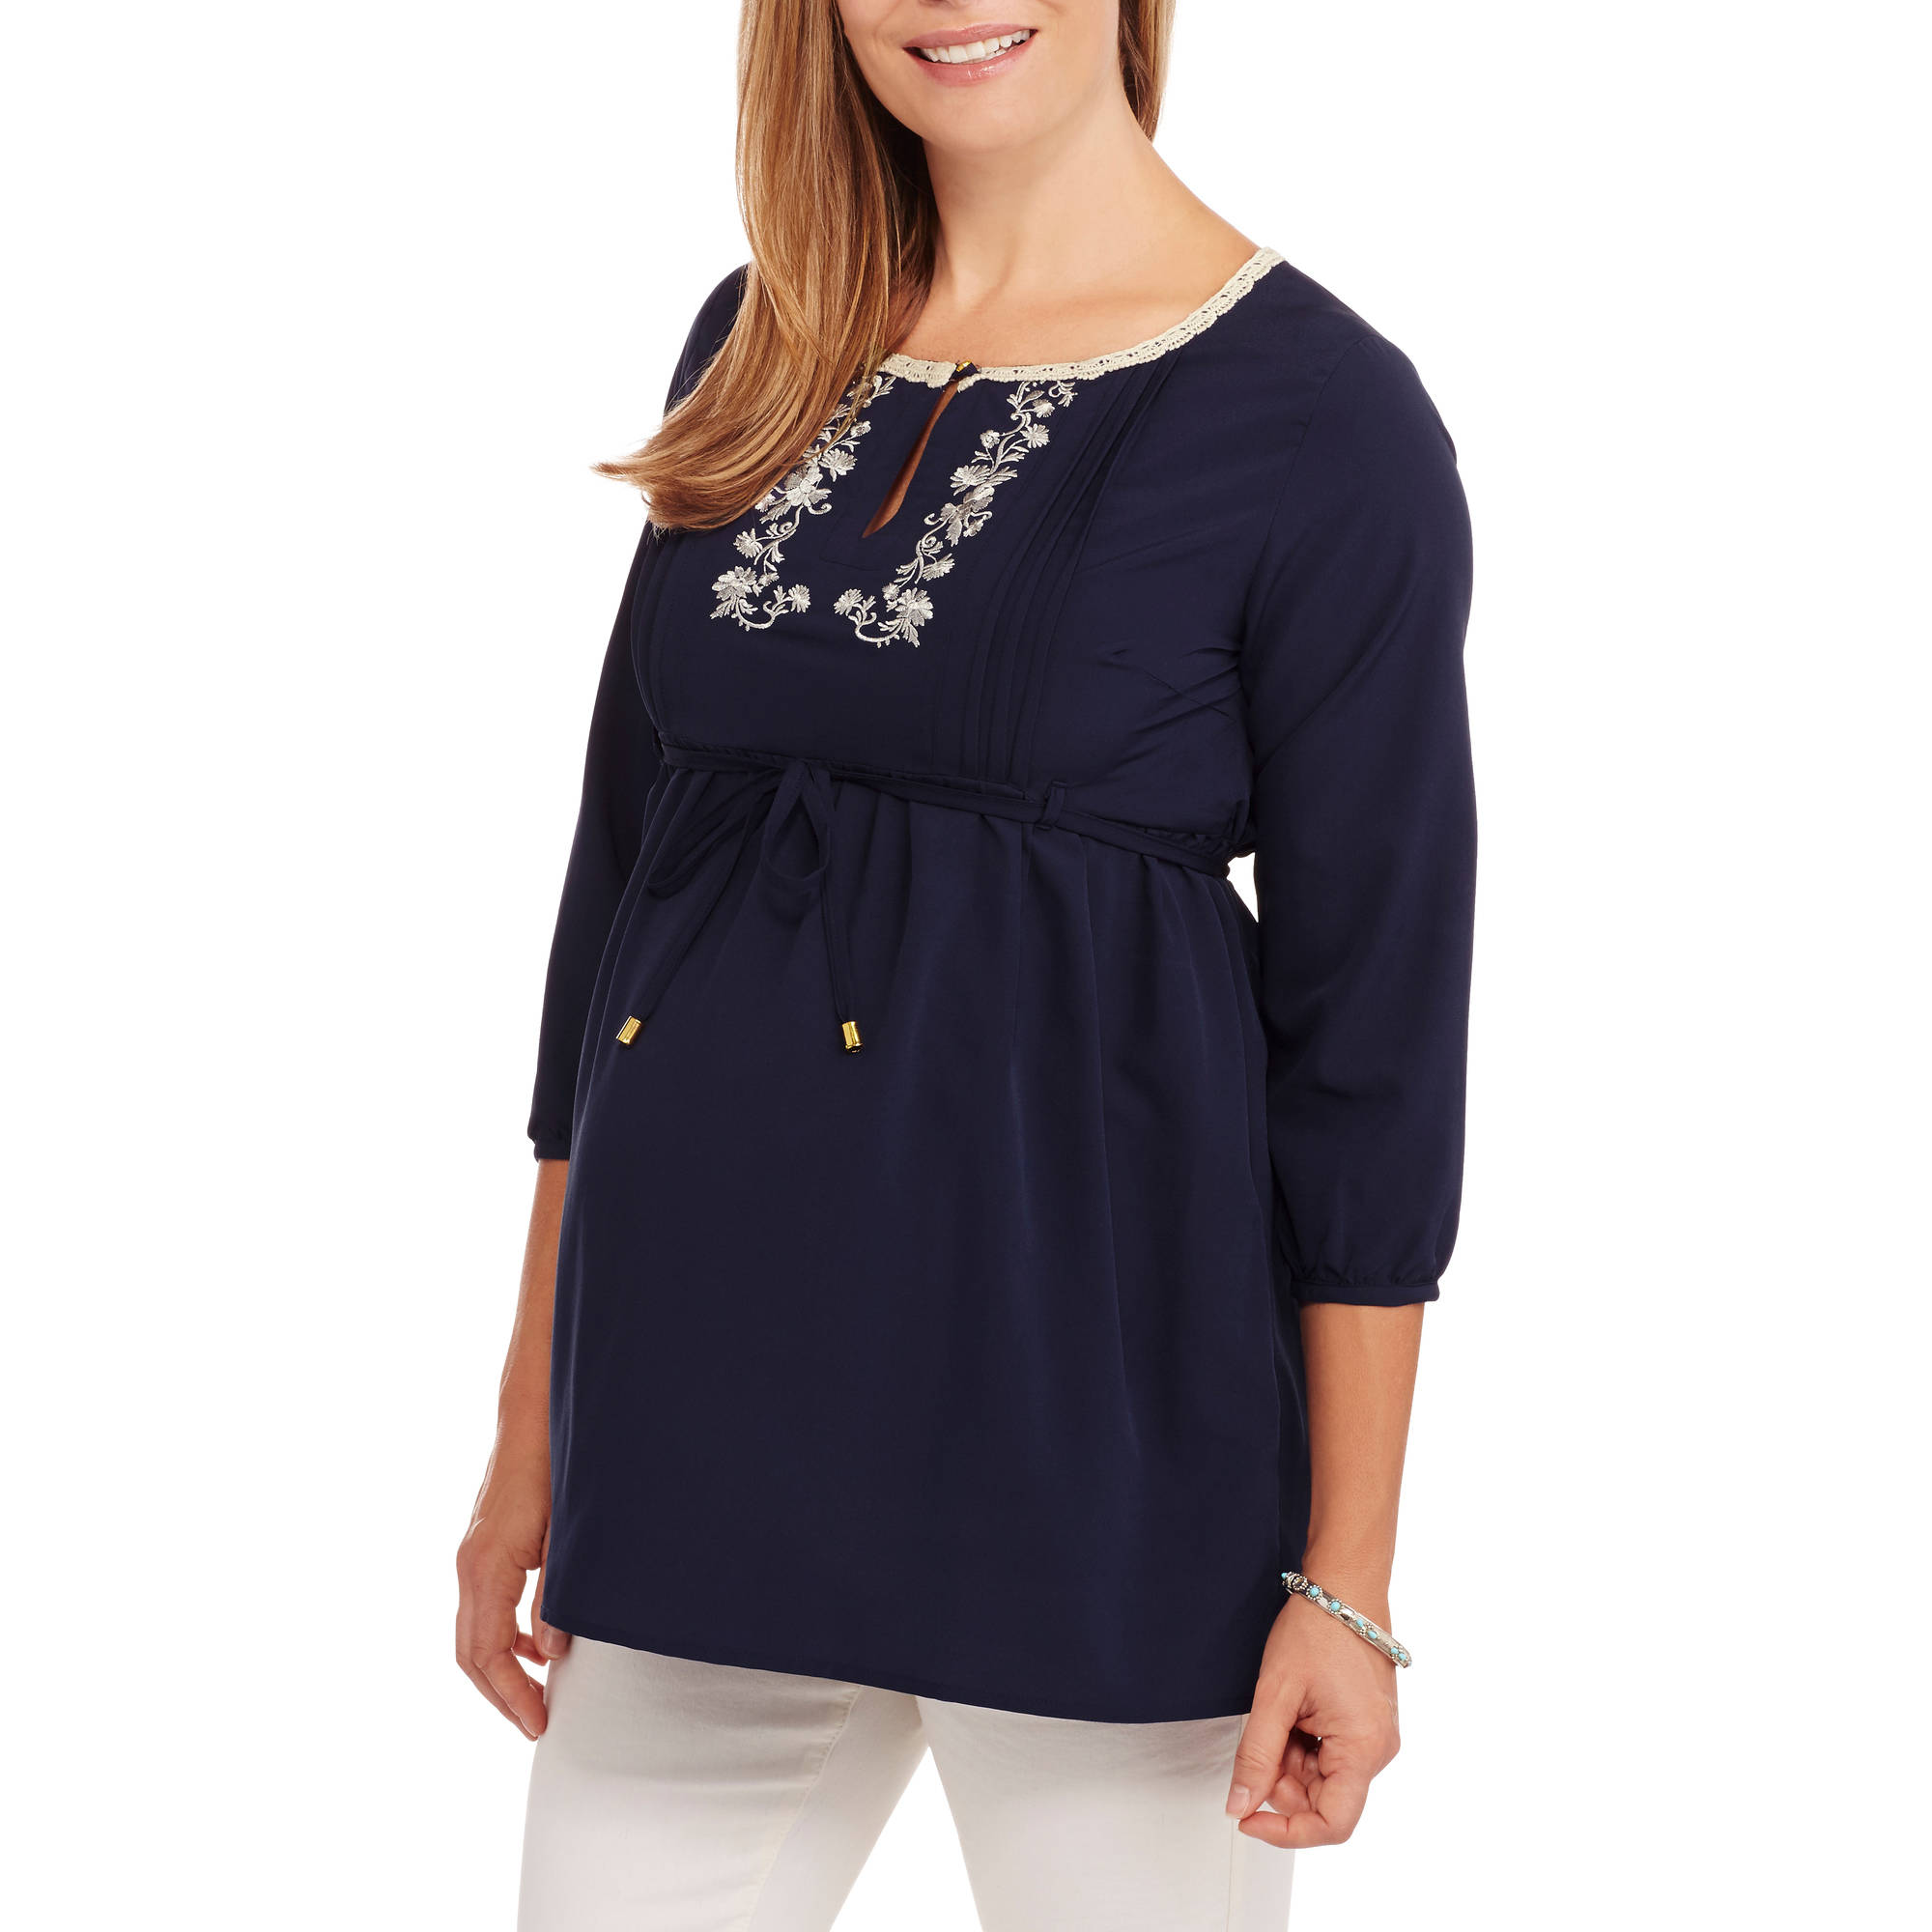 Oh! Mamma Maternity 3/4 Sleeve Embroidered Neck Shirt